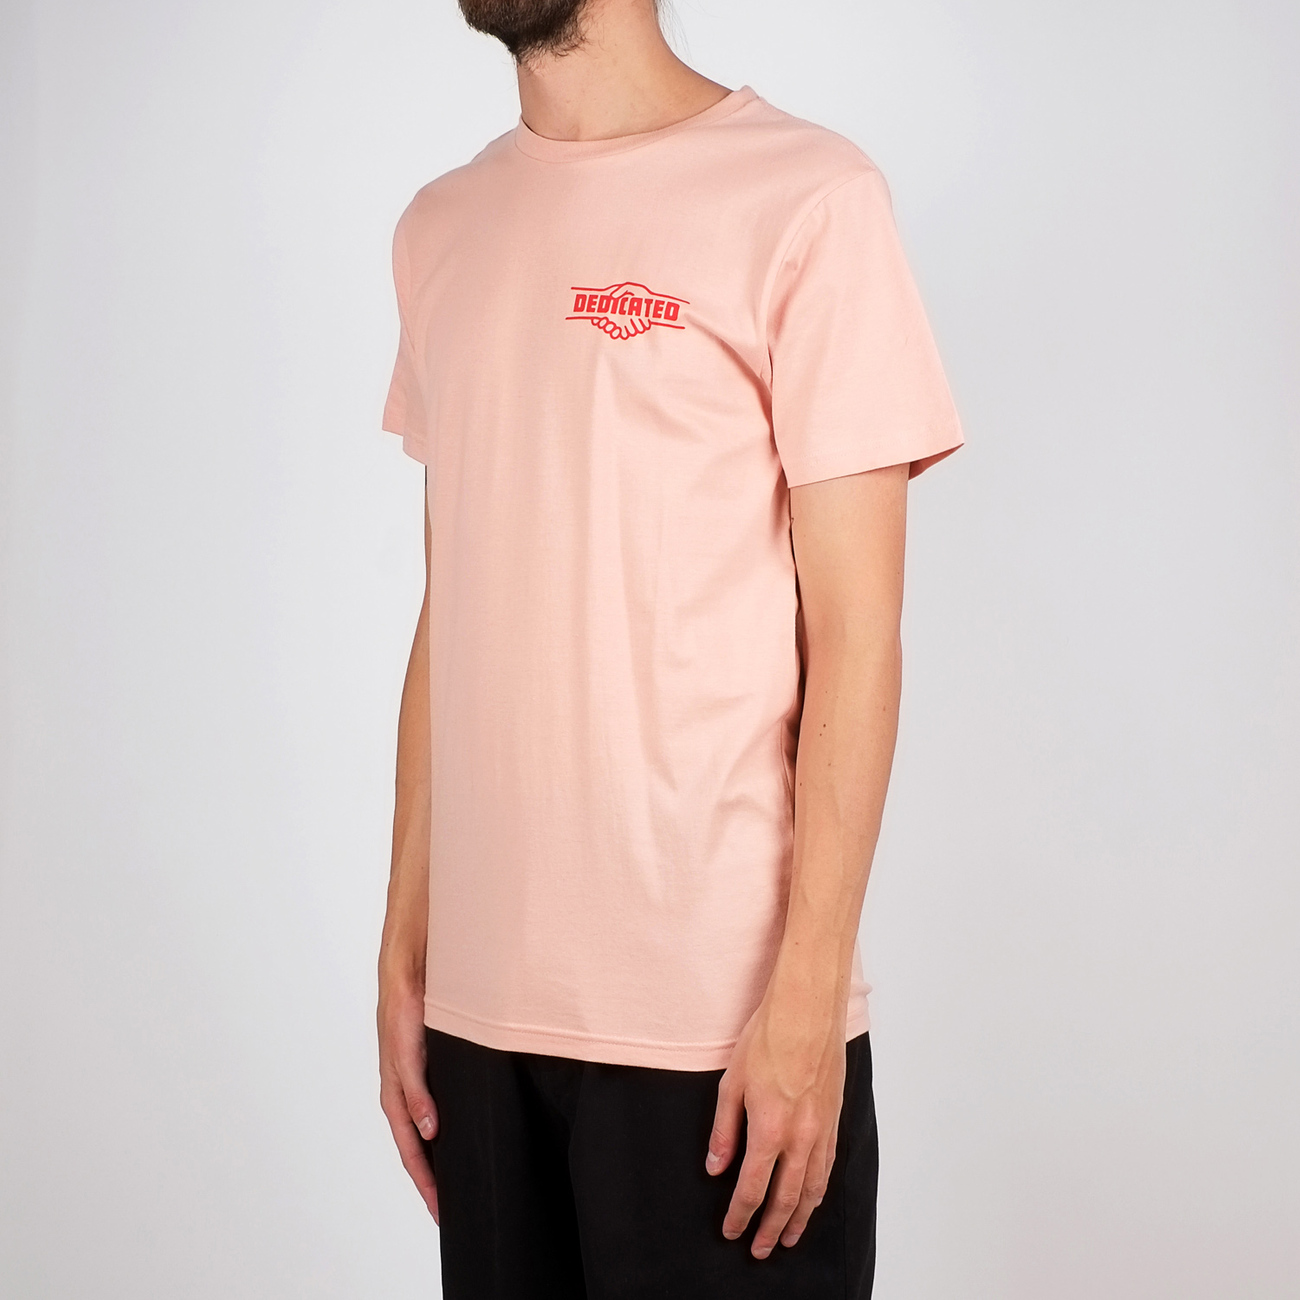 T-shirt Stockholm Good Hands Mellow Pink